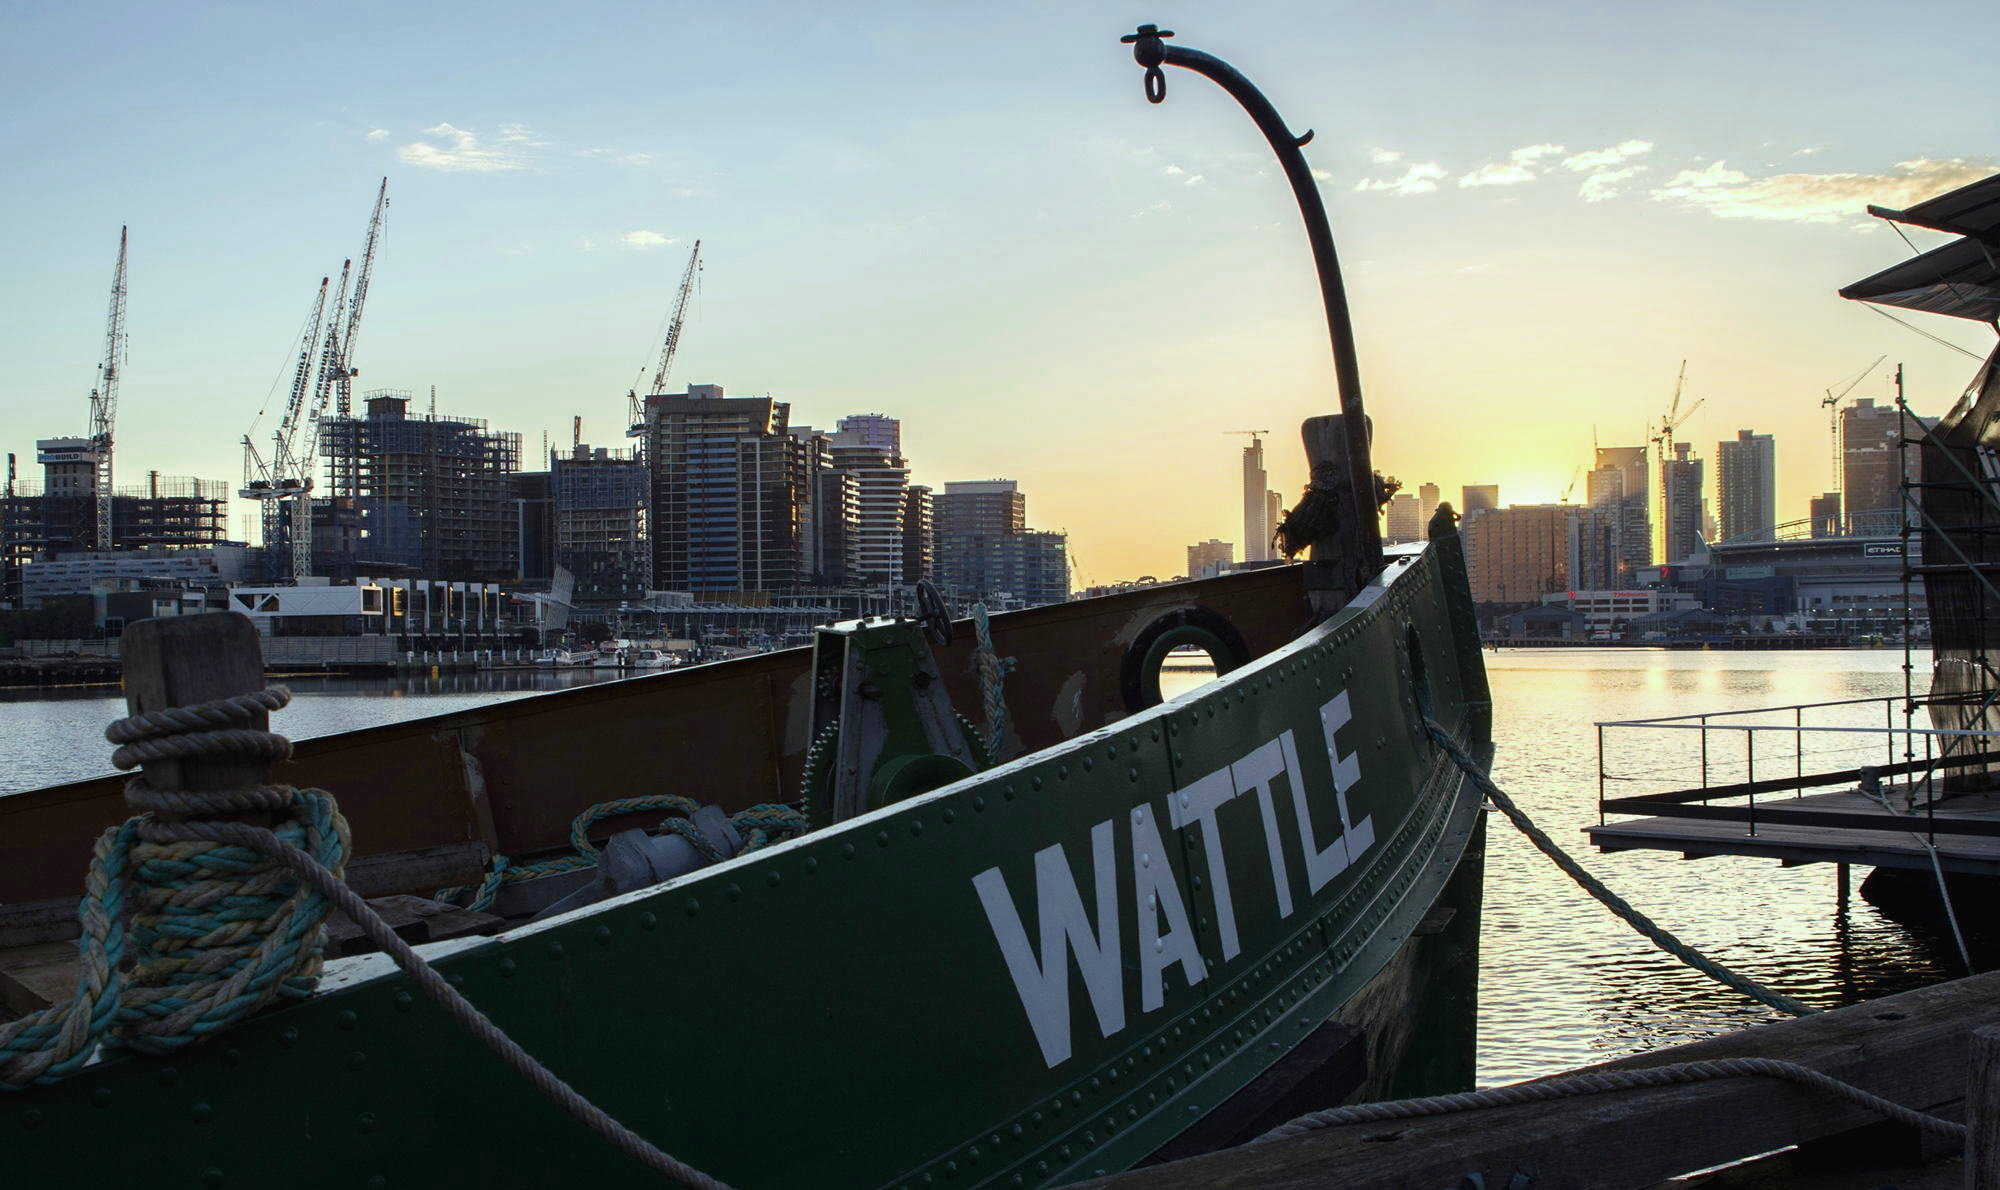 Melbourne city sunrise and a new day for Wattle, 2016 Jeff Malley